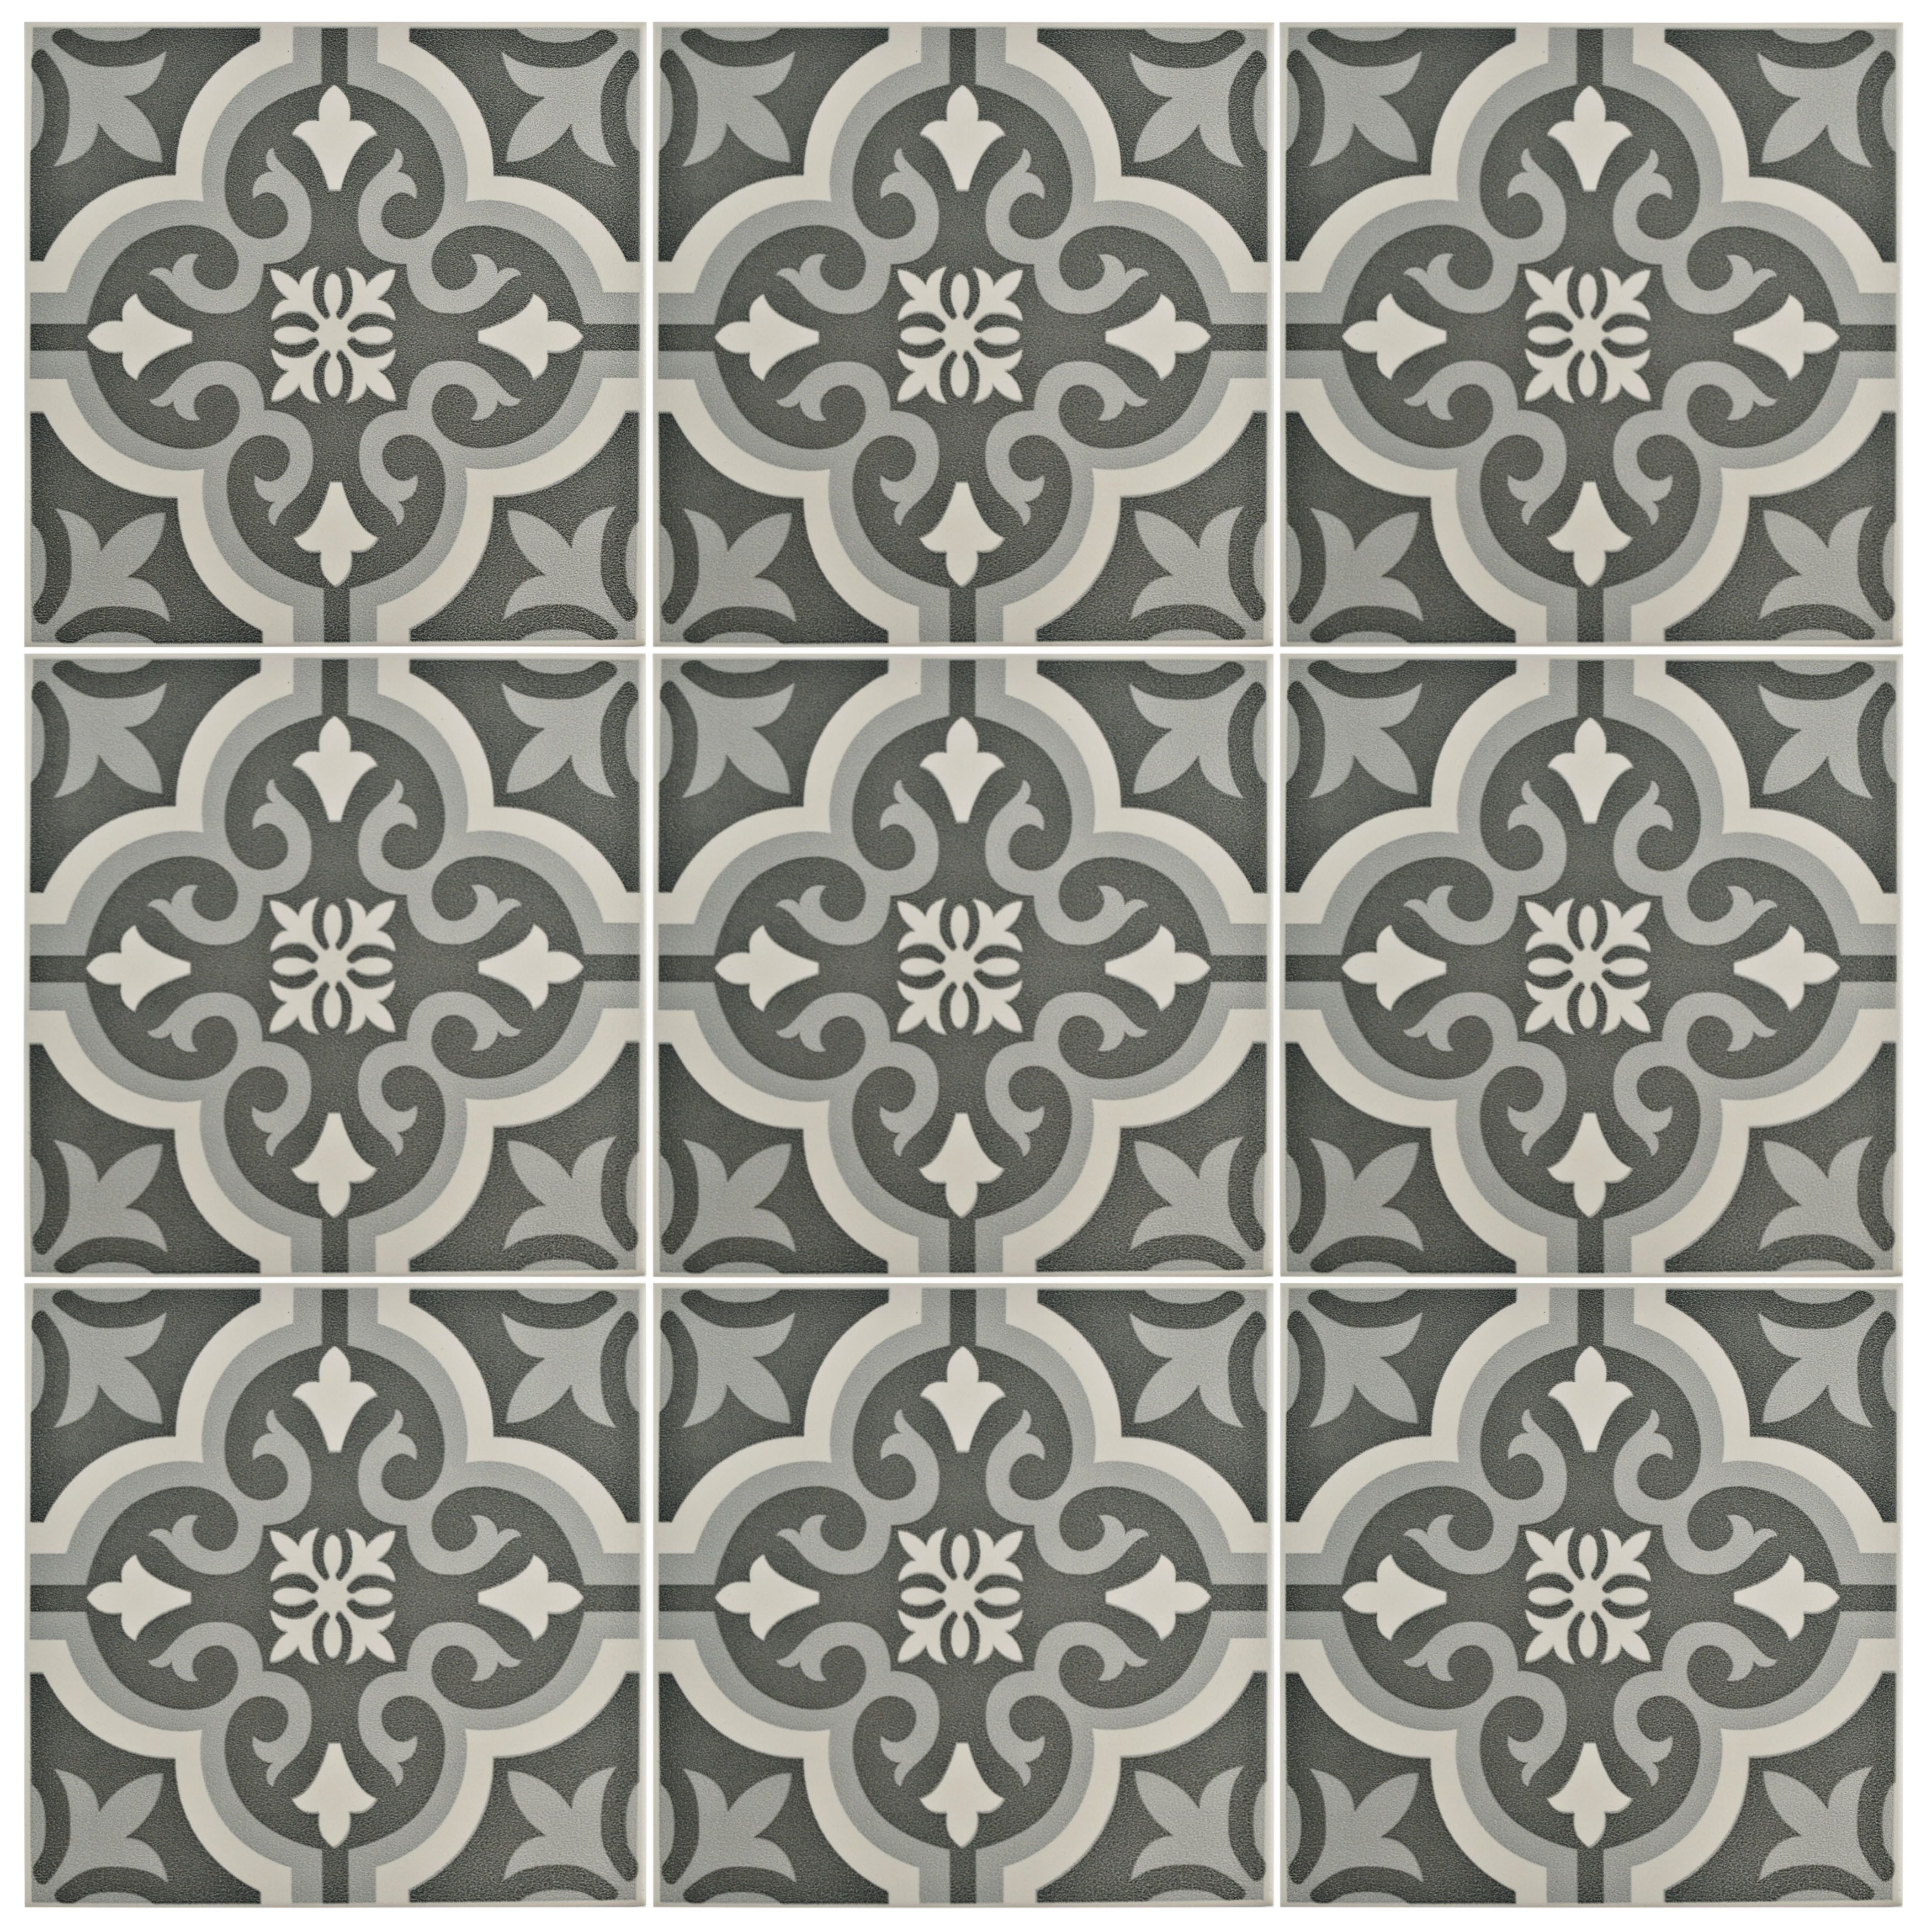 Lima 775 x 775 ceramic field tile in charcoal graywhite lima elitetile lima 8 x 8 ceramic tile dailygadgetfo Choice Image